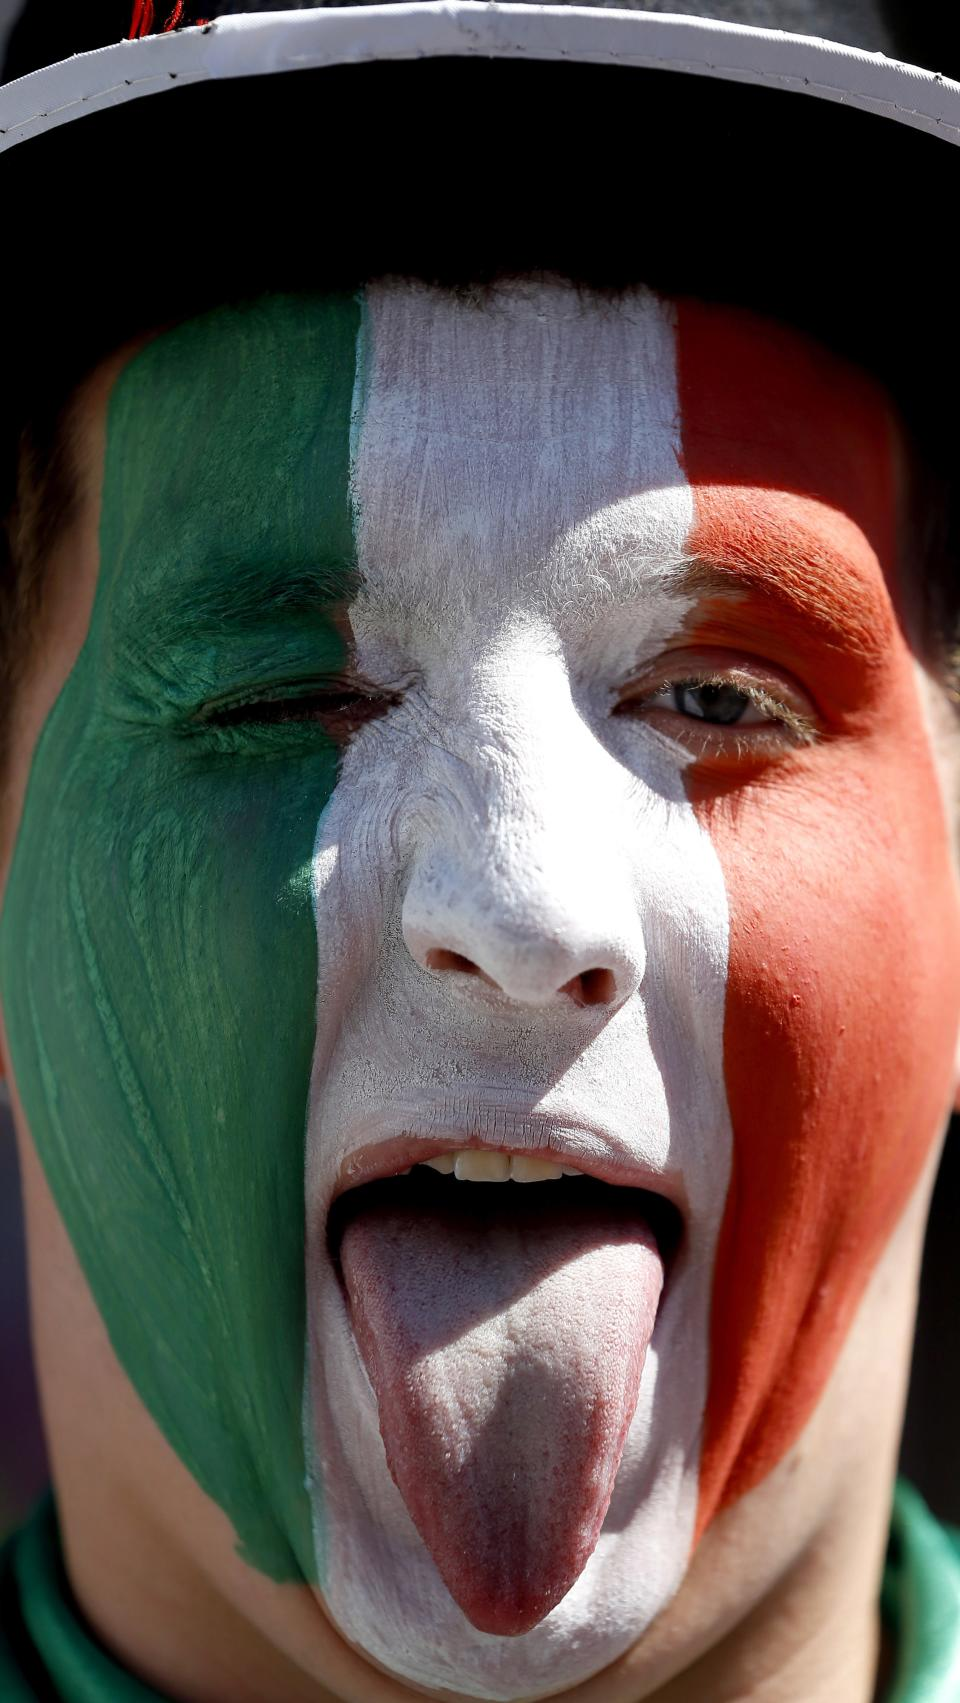 An Italy fan shows his tongue in the fan zone in Kiev, Ukraine, Sunday, June 24, 2012. Italy will play England in a Euro 2012 quarterfinal soccer match later Sunday. (AP Photo/Kirsty Wigglesworth)